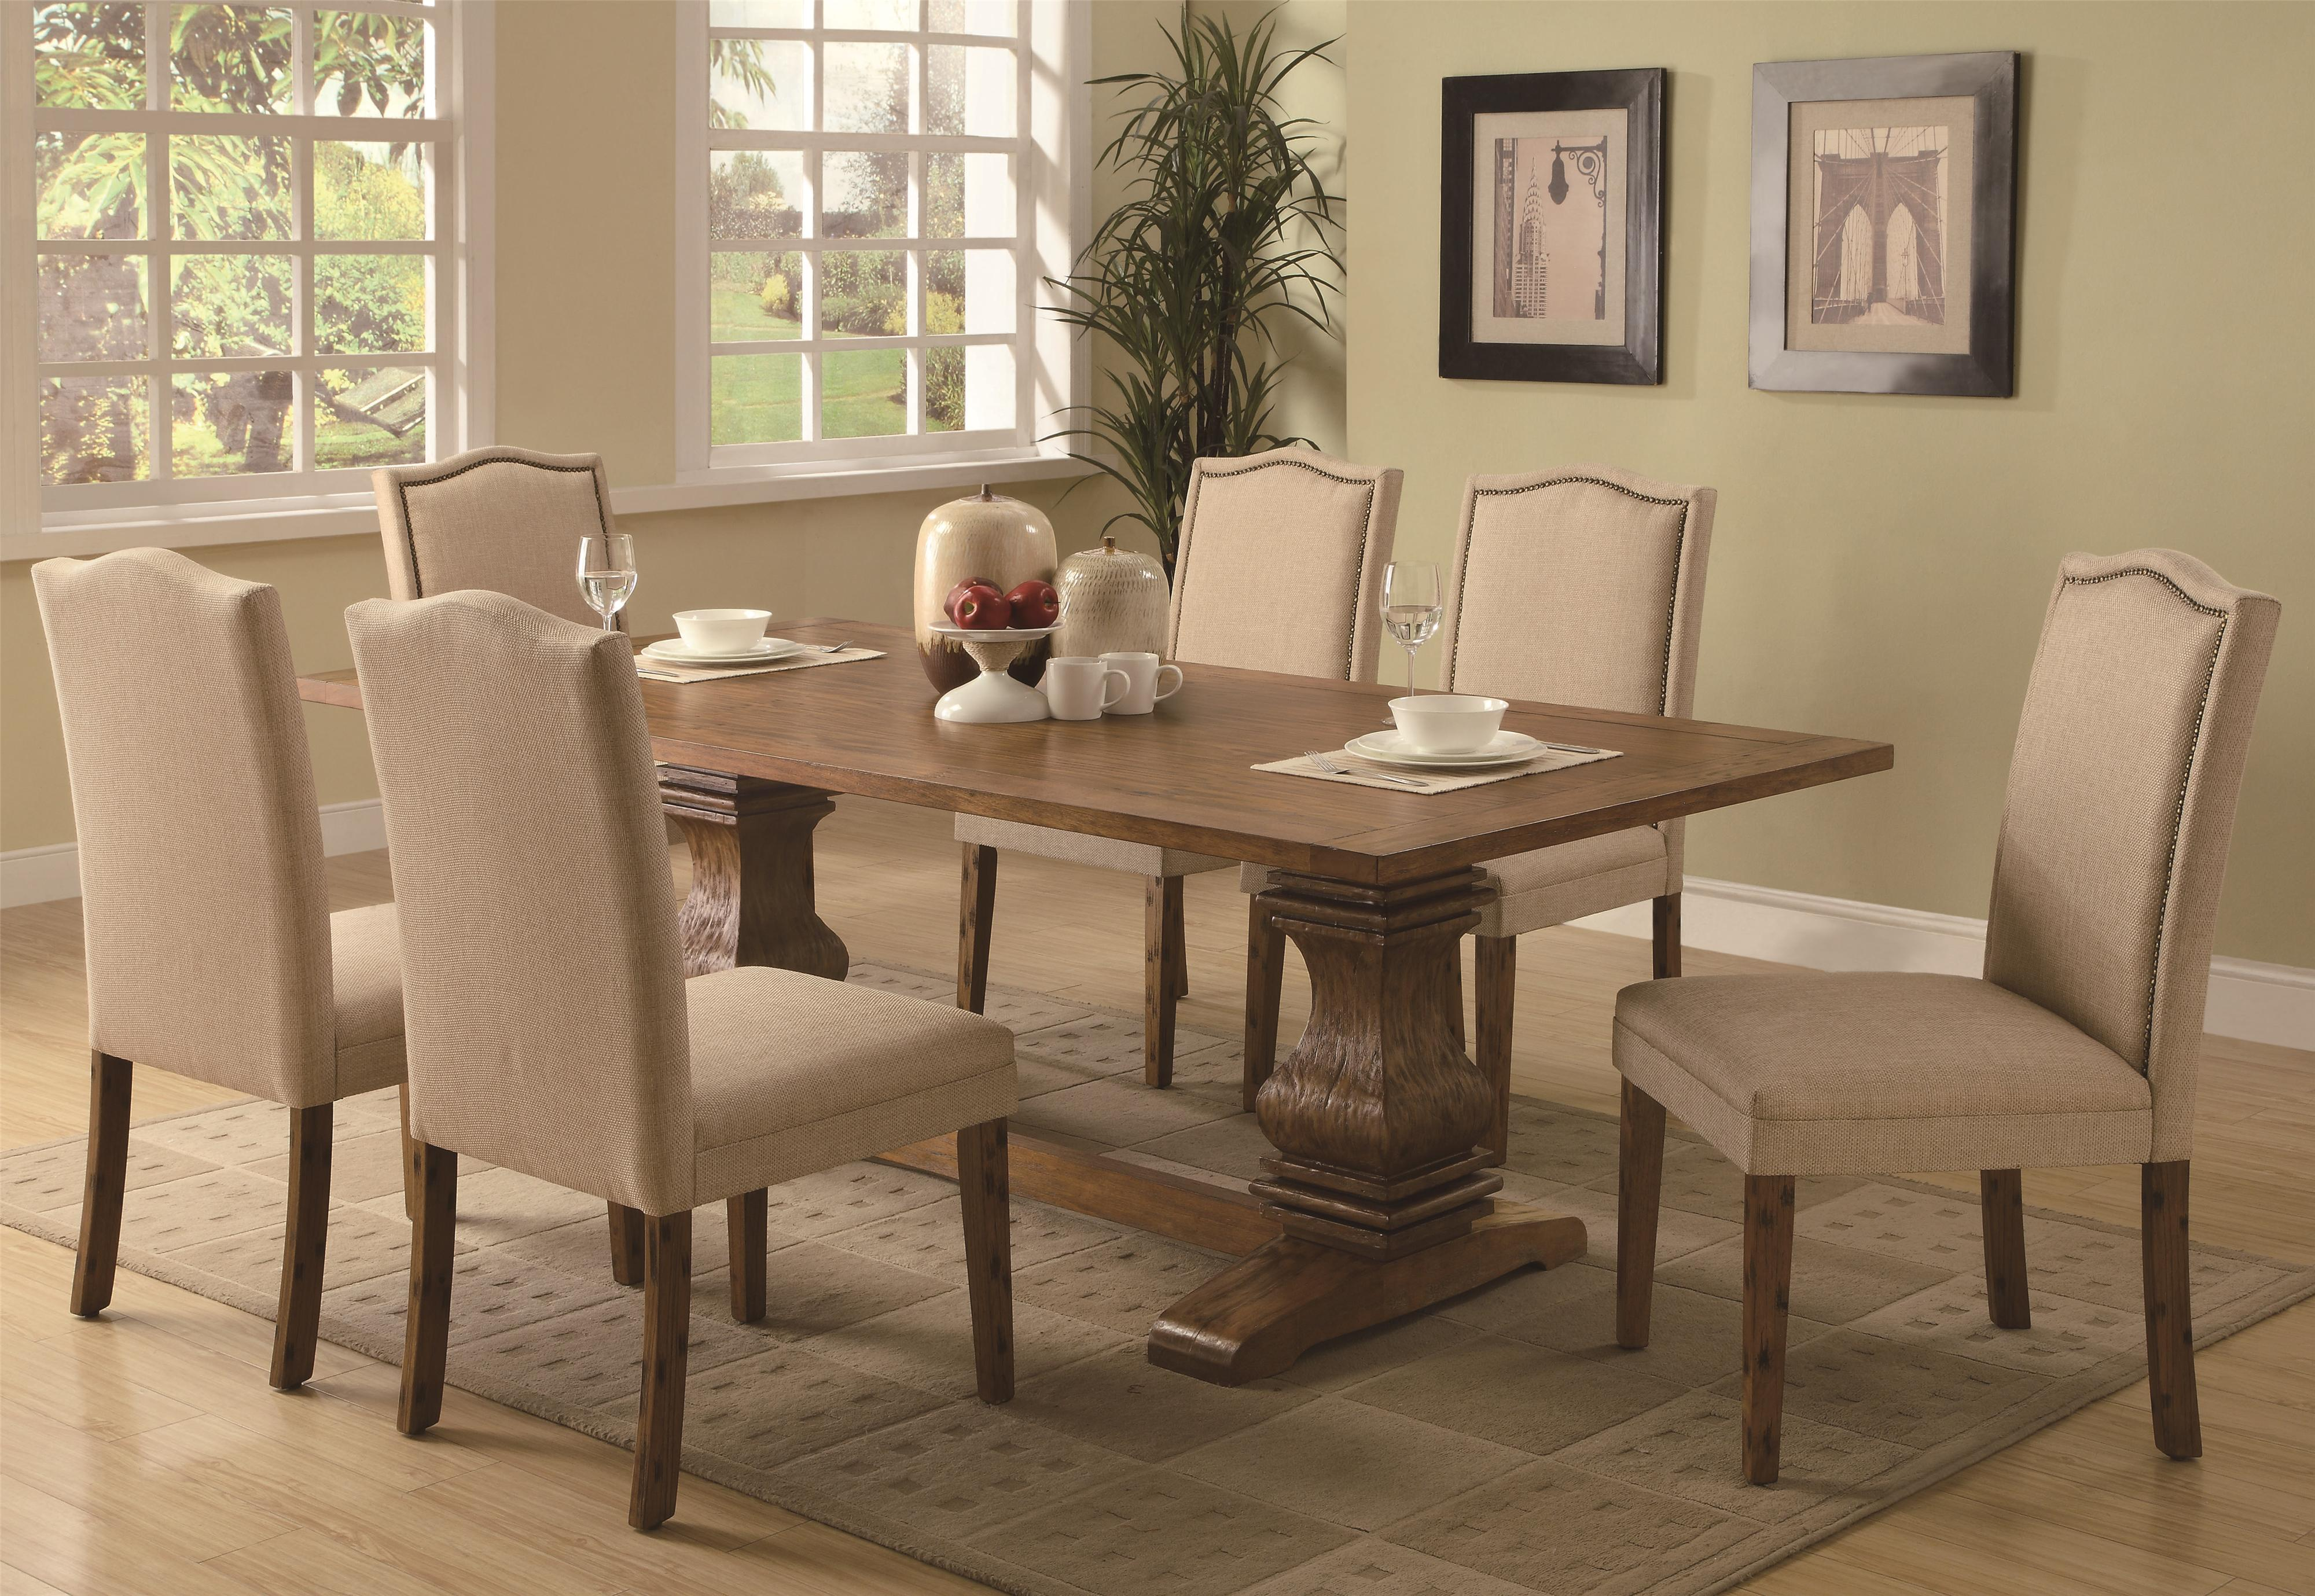 7 Piece Dining Table And Parson Chair Set By Coaster Wolf And